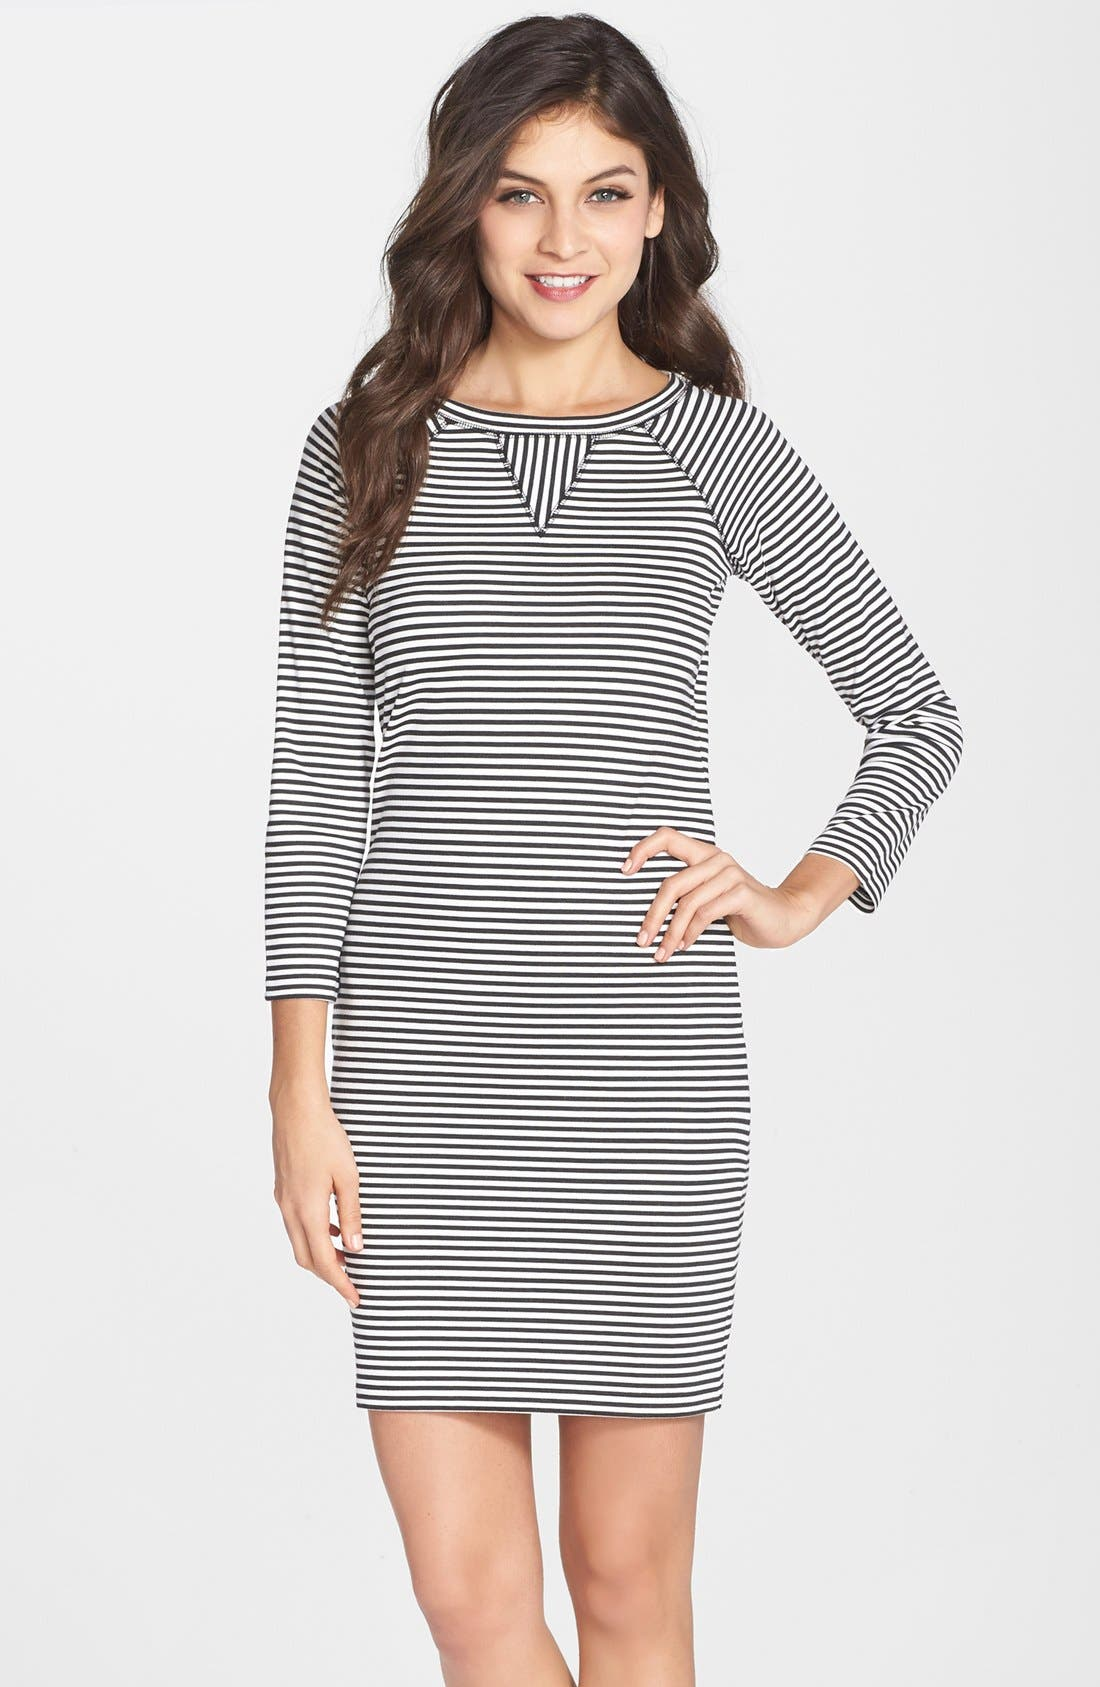 Alternate Image 1 Selected - French Connection 'Licorice Lines' Stripe Jersey Shift Dress